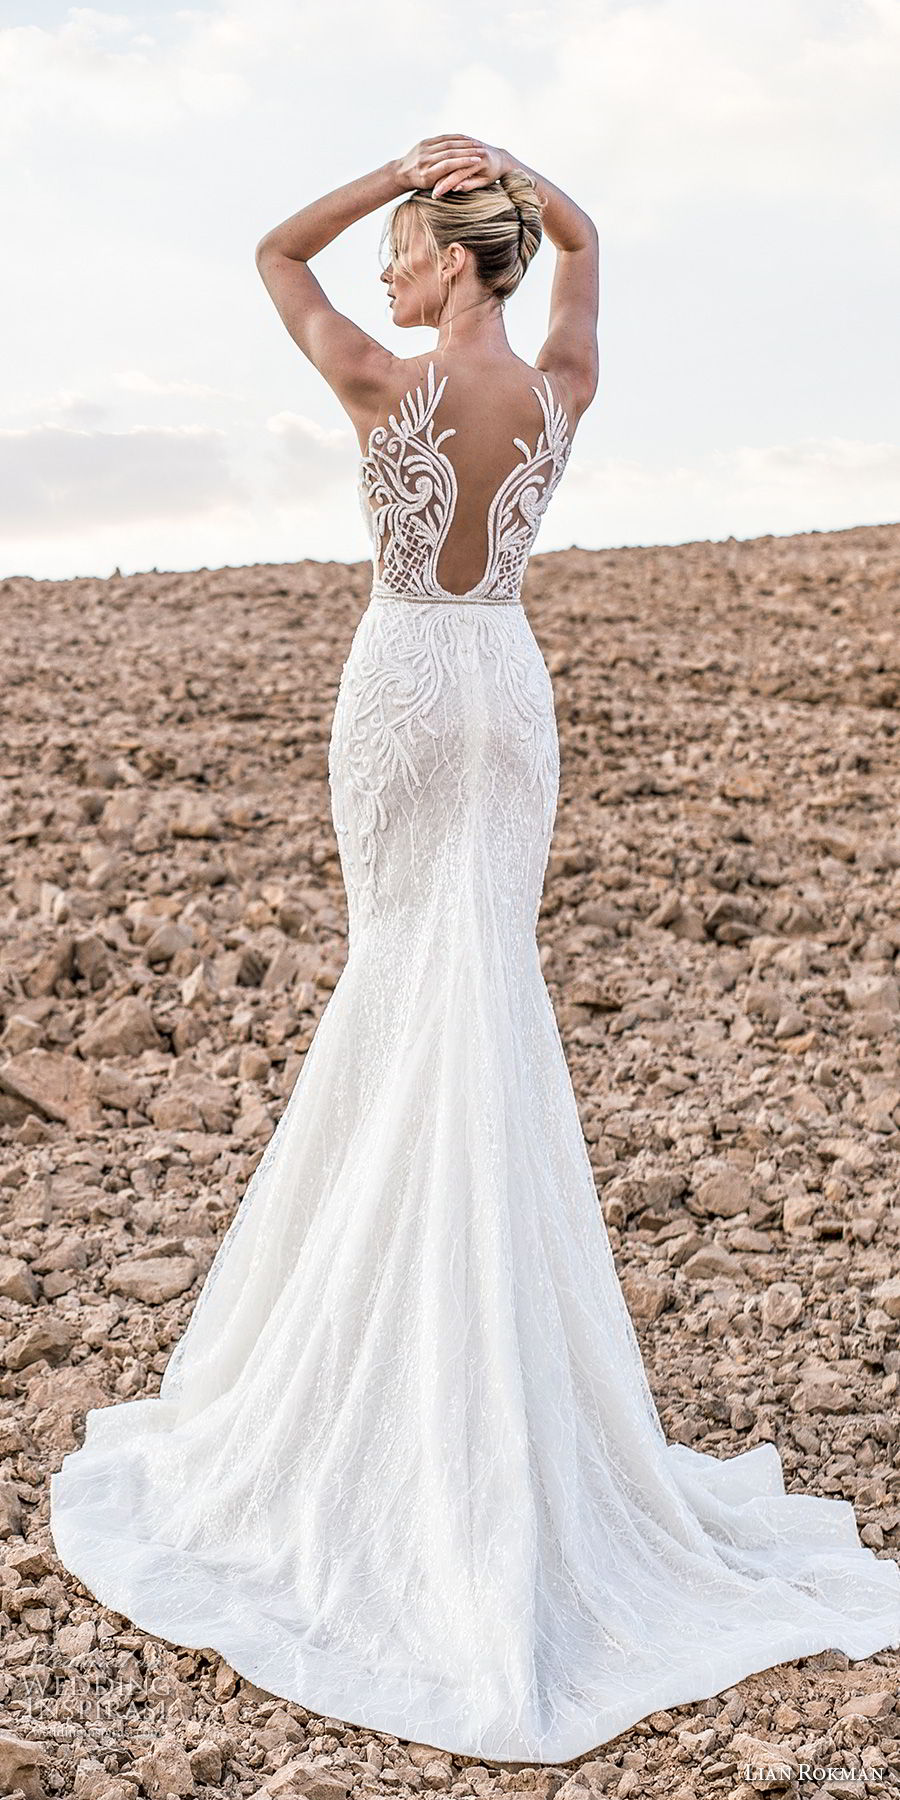 lian rokman 2017 bridal sleeveless deep plunging sweetheart neckline full embellishment elegant trumpet wedding dress lace back chapel train (zircon) bv